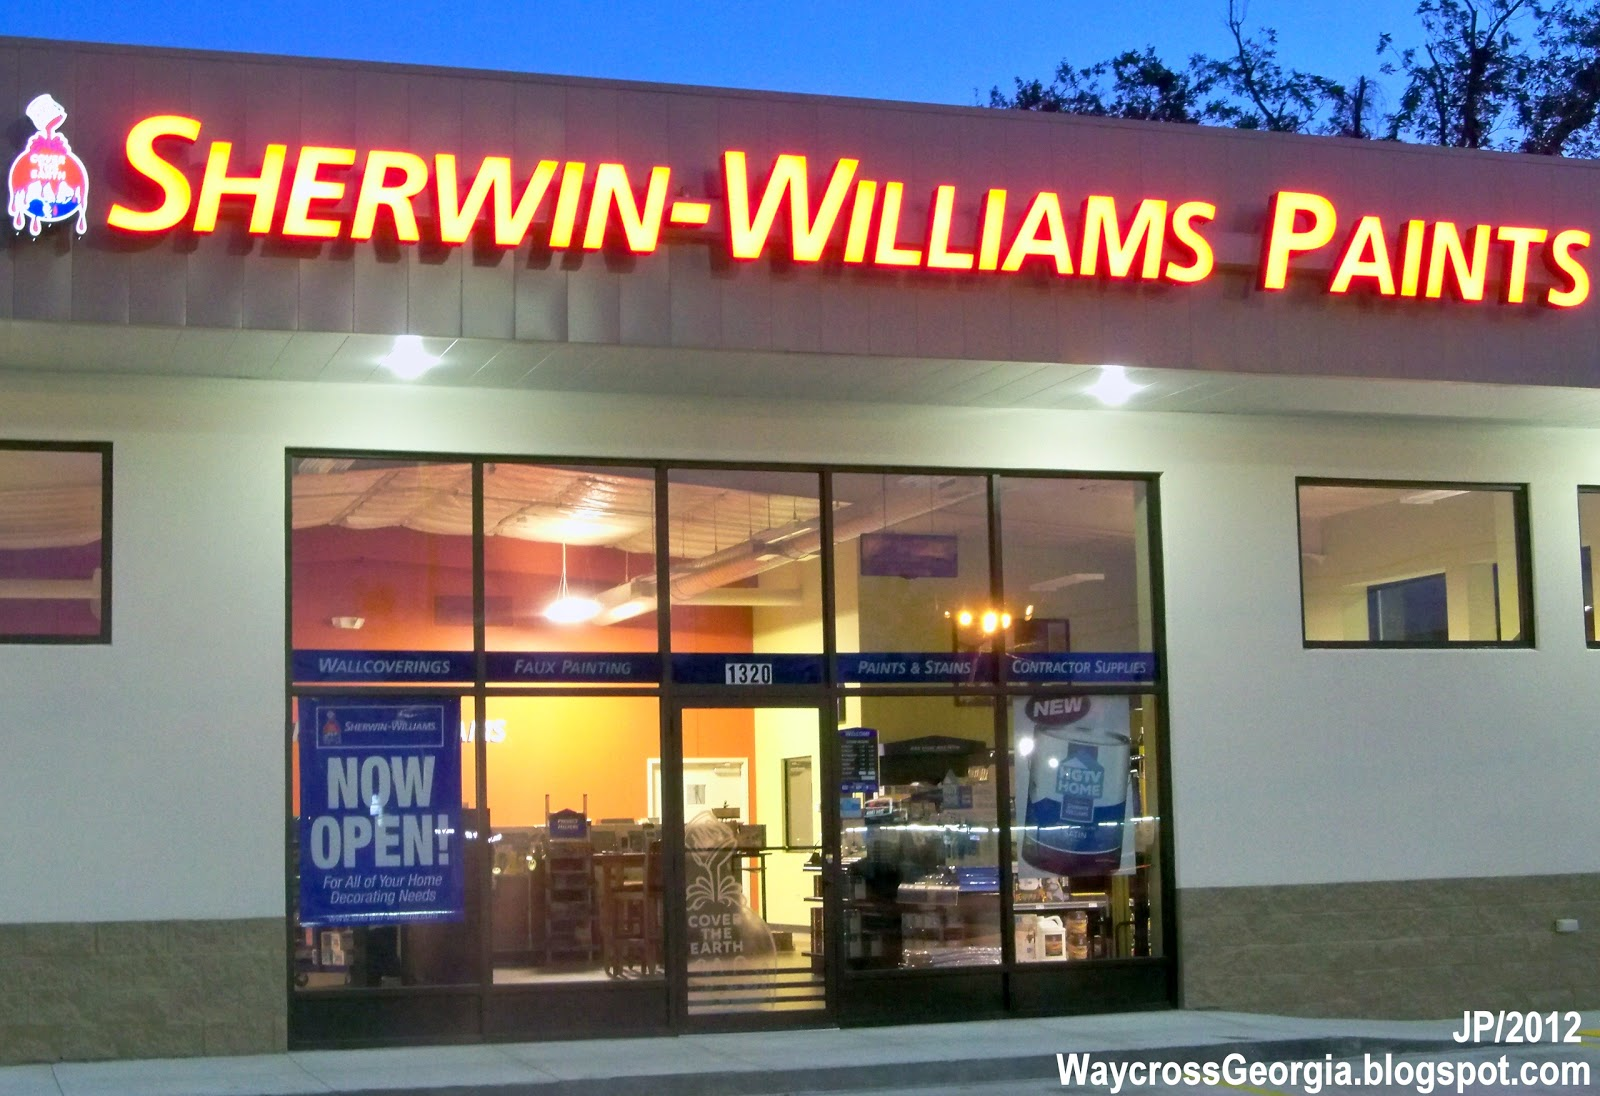 SHERWIN WILLIAMS PAINTS WAYCROSS GEORGIA Memorial Drive Sherwin 1600x1096